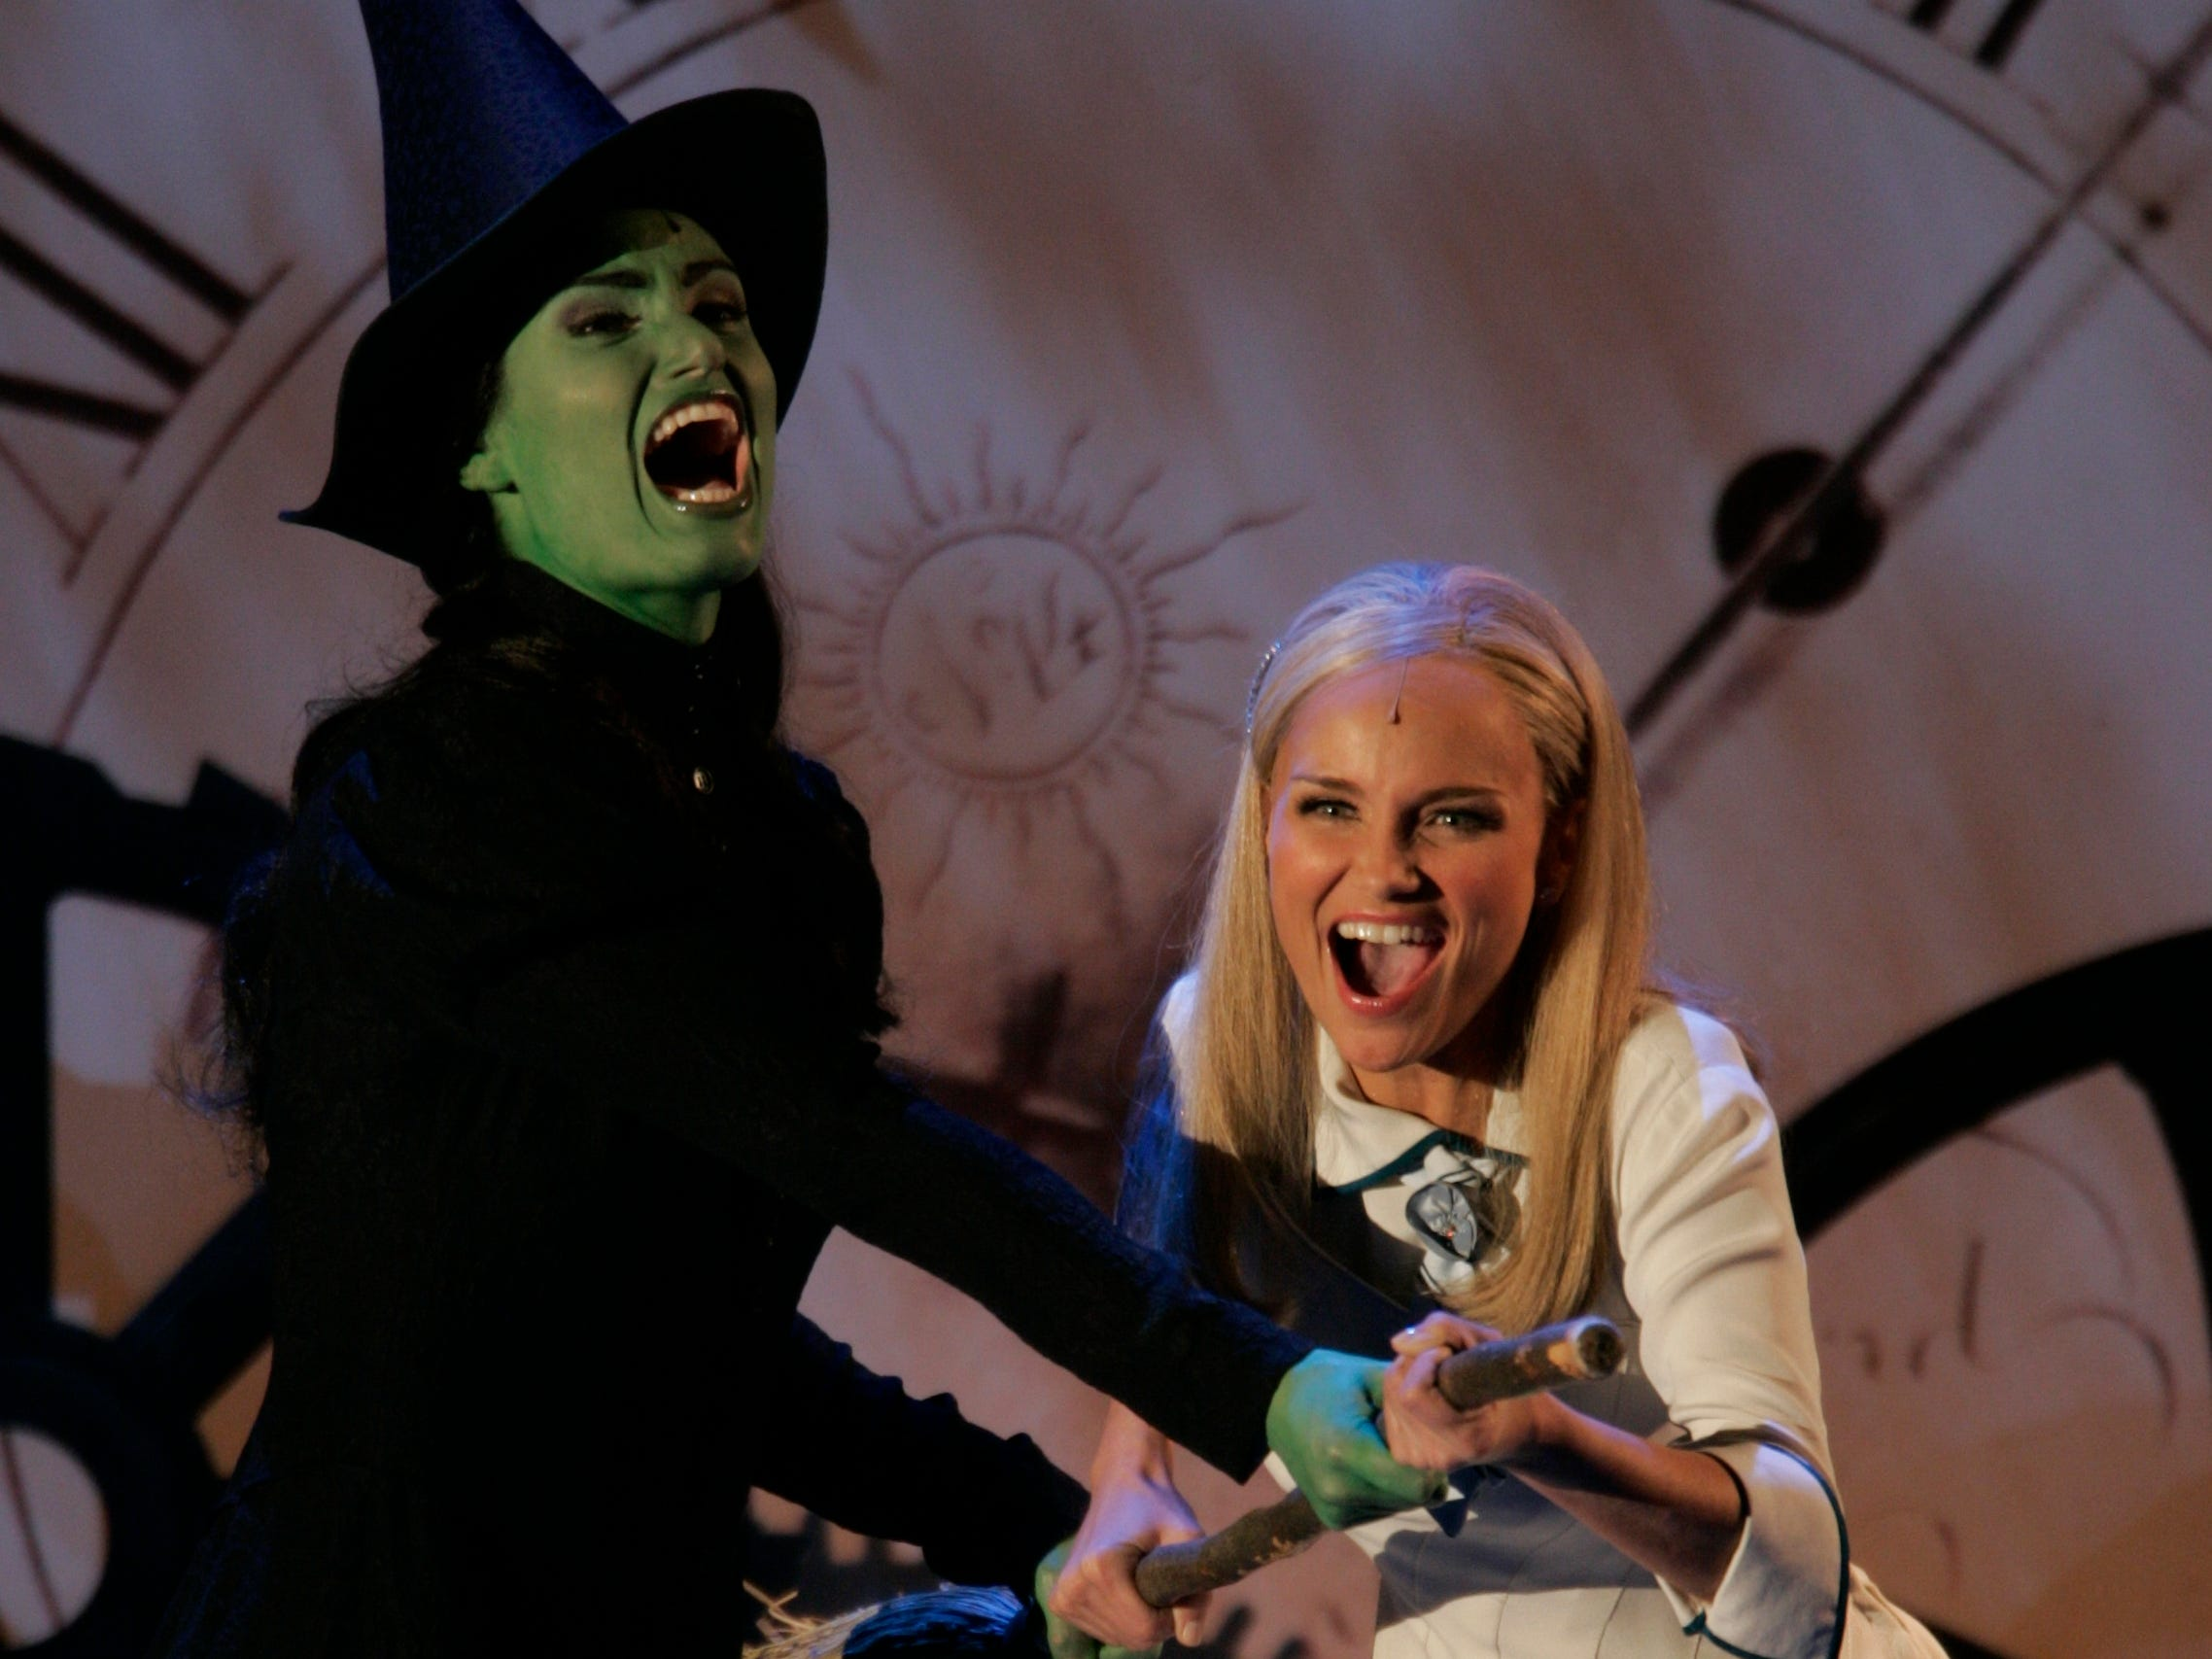 6/6/2004 -- New York --  Idina Menzel, left, and Kristin Chenoweth of Wicked perform at the 58th Annual Tonys Awards at Radio City Music Hall in New York City.  Menzel and castmate Kristin Chenoweth are both nomminated for Best Actress in a Musical for Wicked. Photo by   Robert Deutsch / USA TODAY